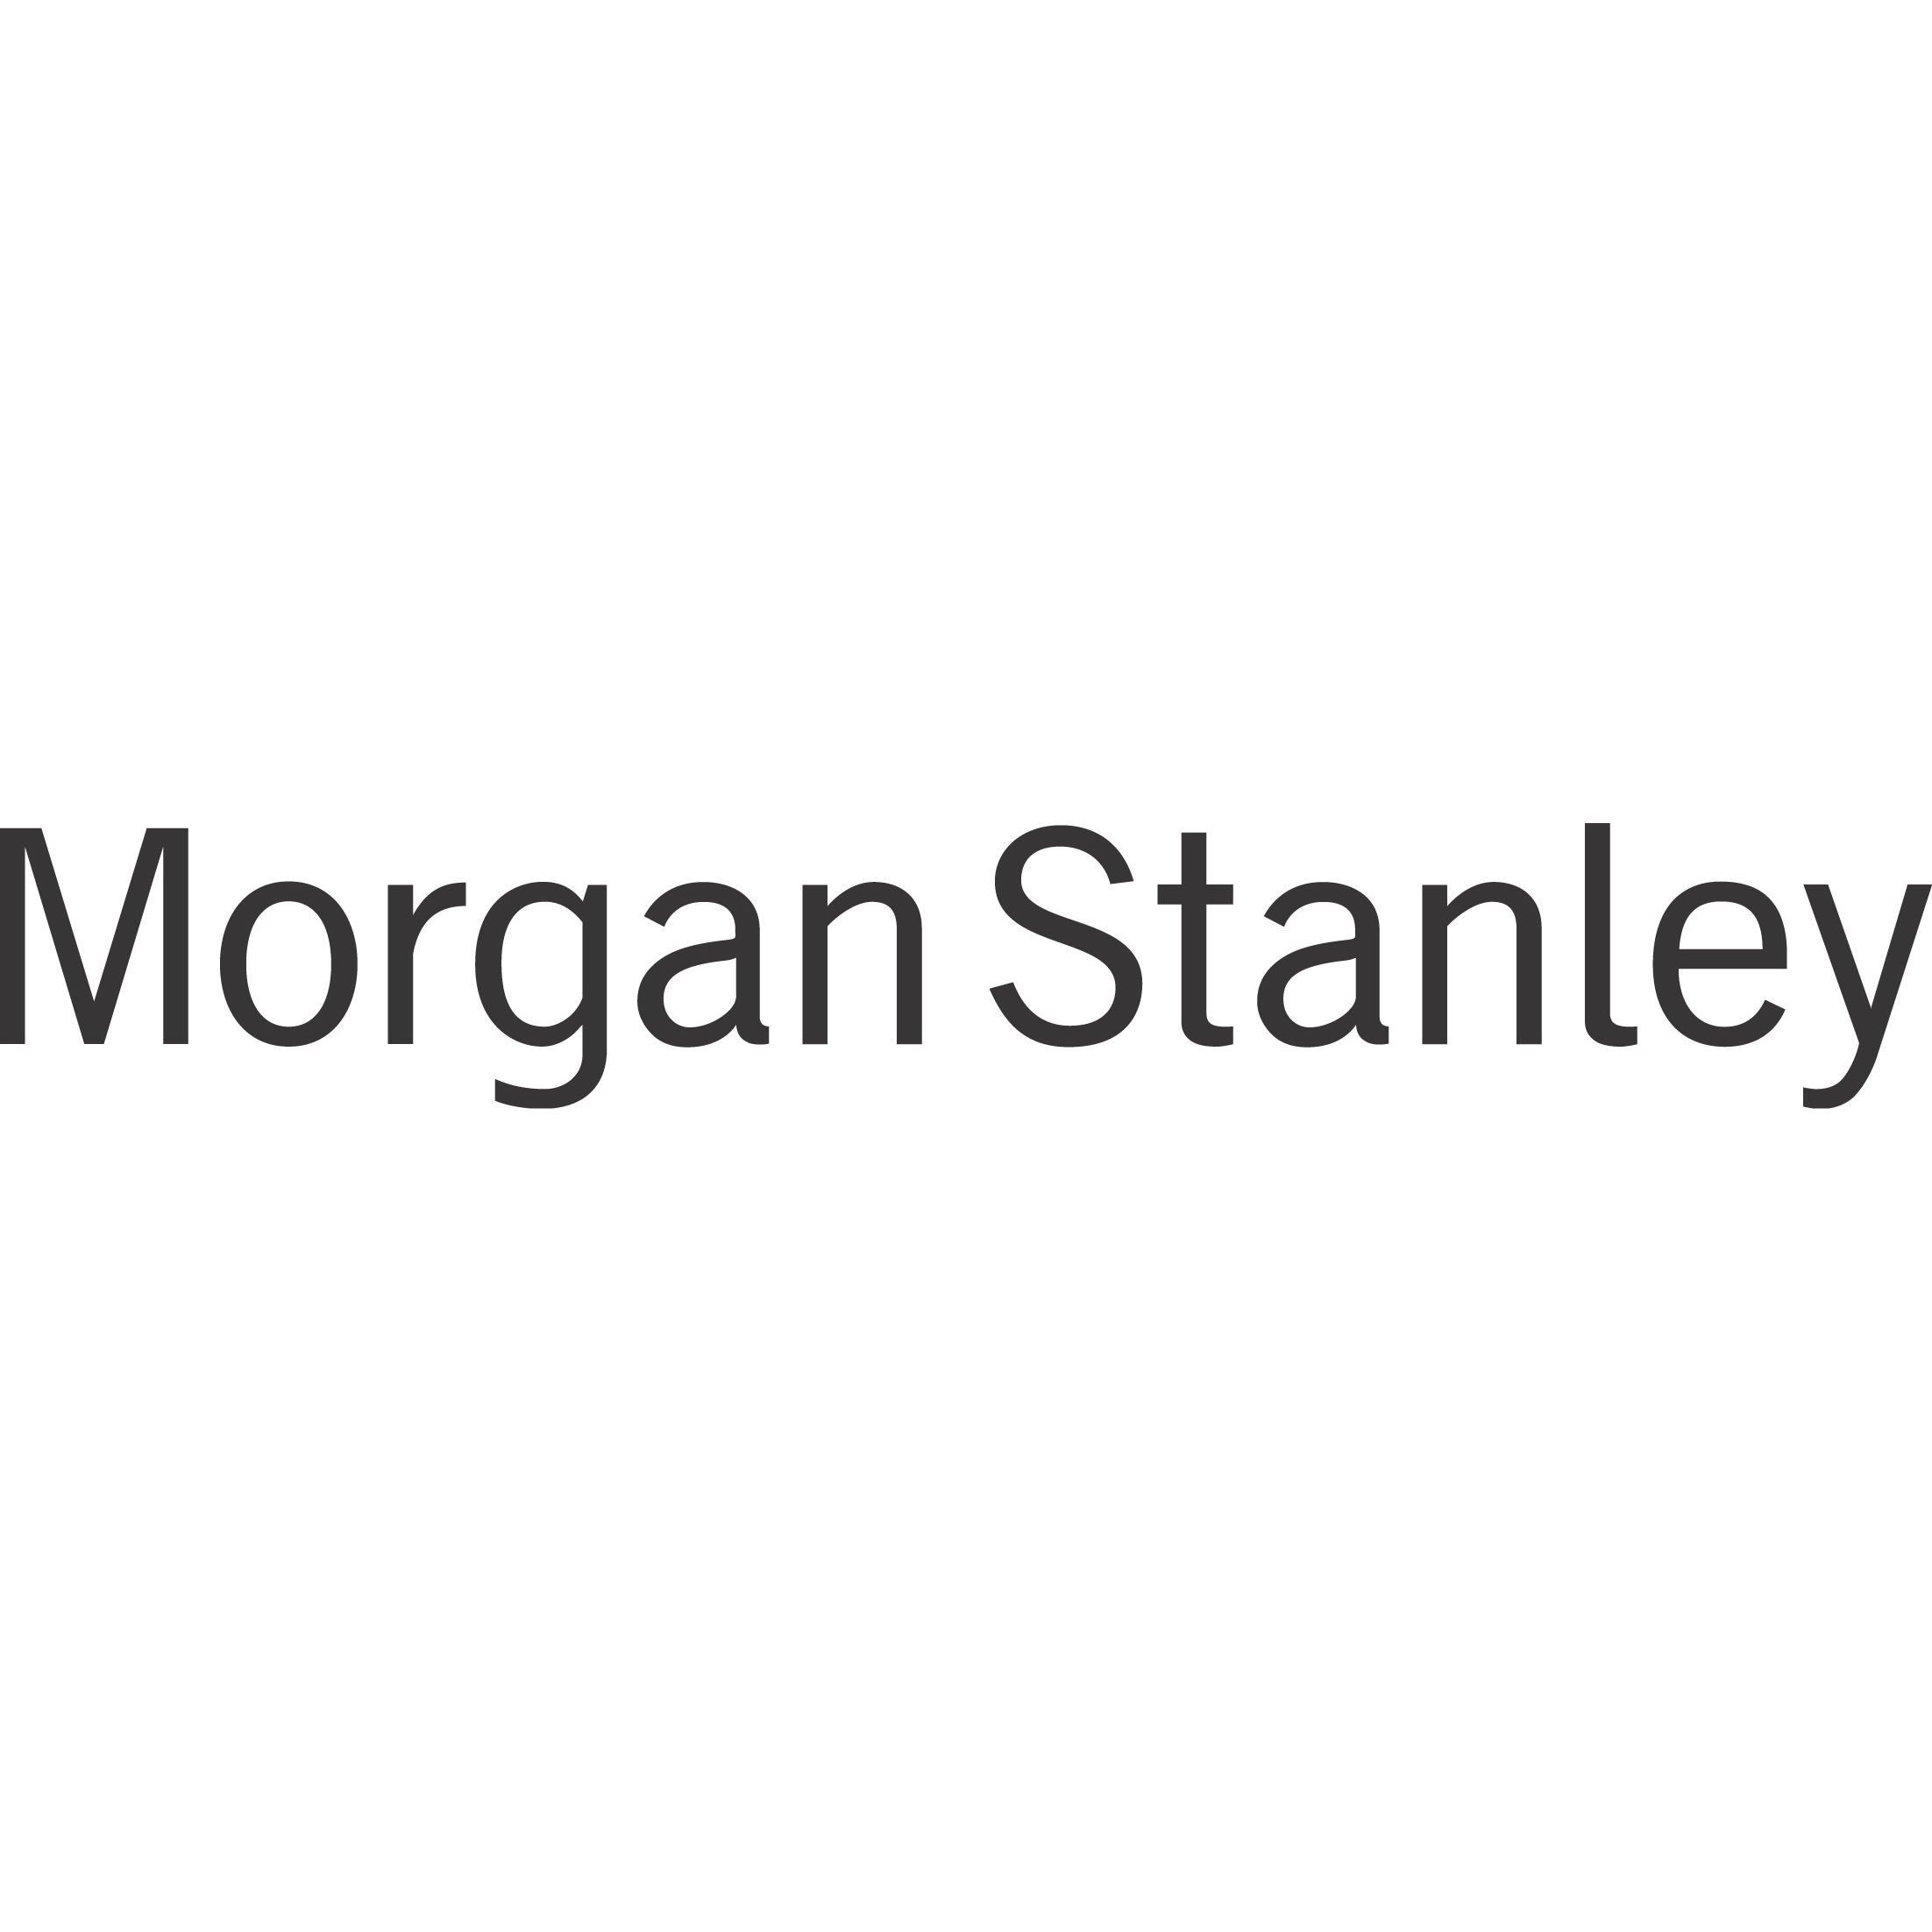 The Johnson Group - Morgan Stanley | Financial Advisor in Oklahoma City,Oklahoma